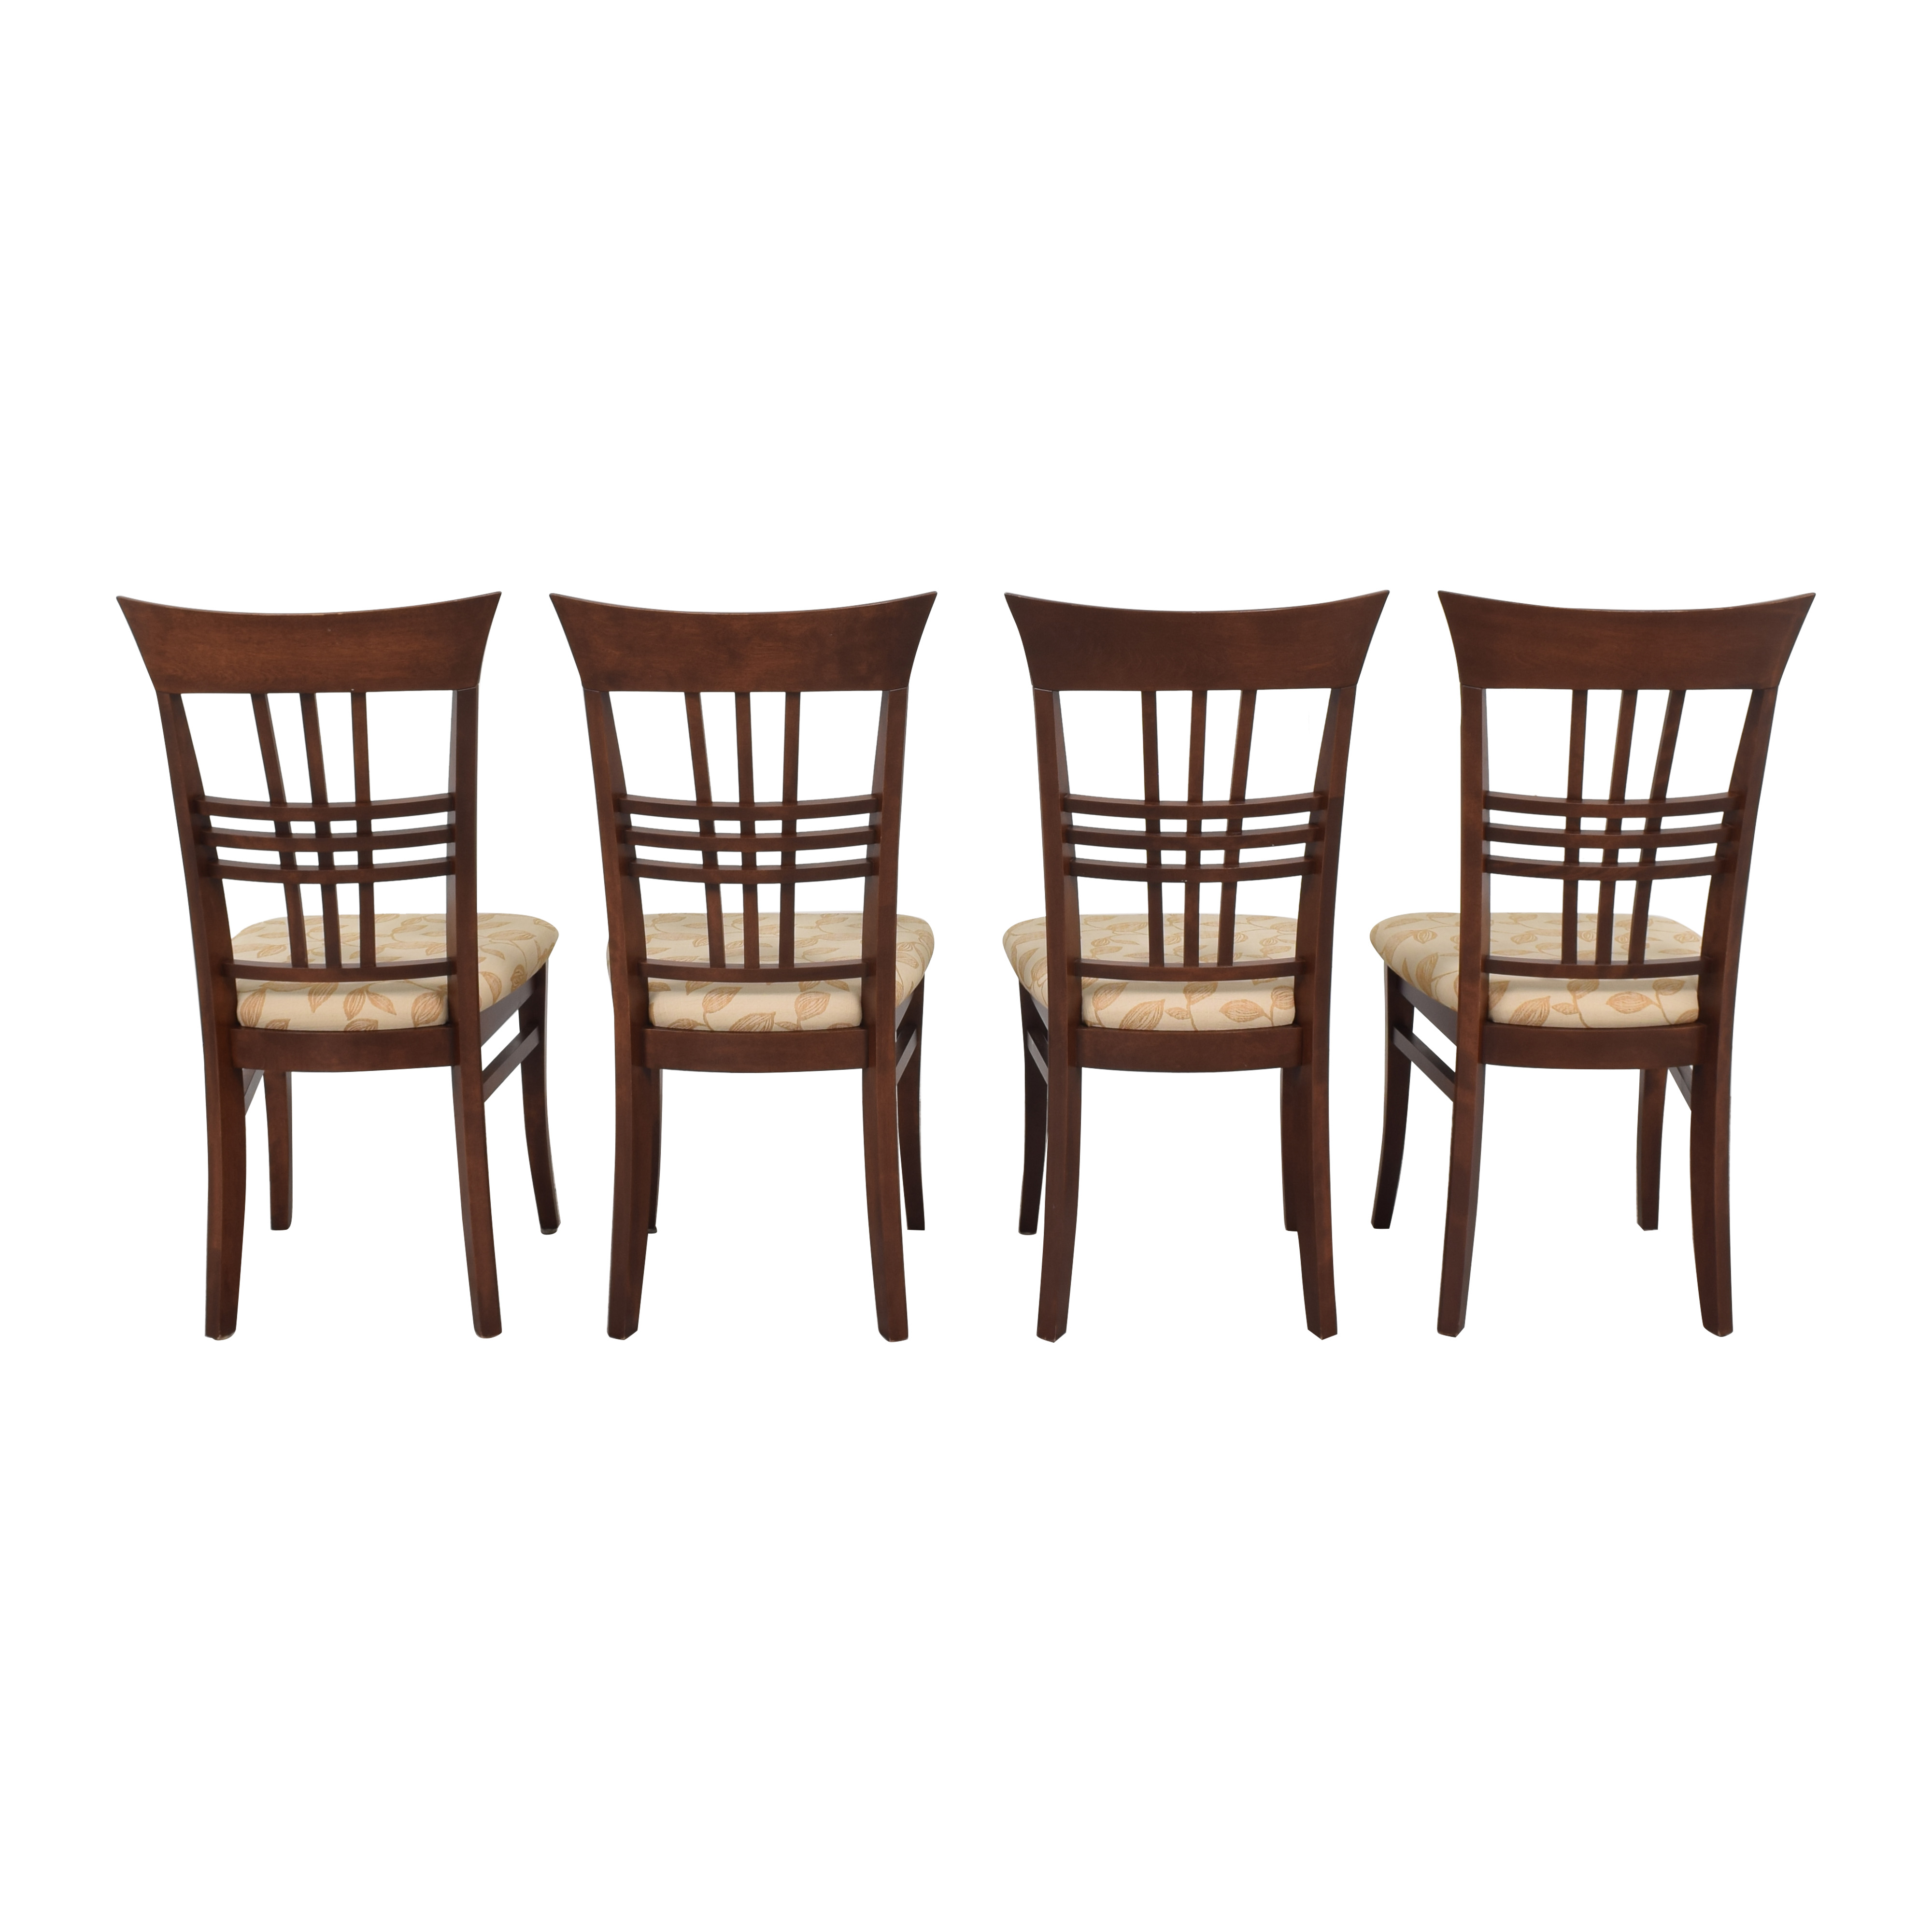 Thomasville Thomasville Dining Side Chairs coupon